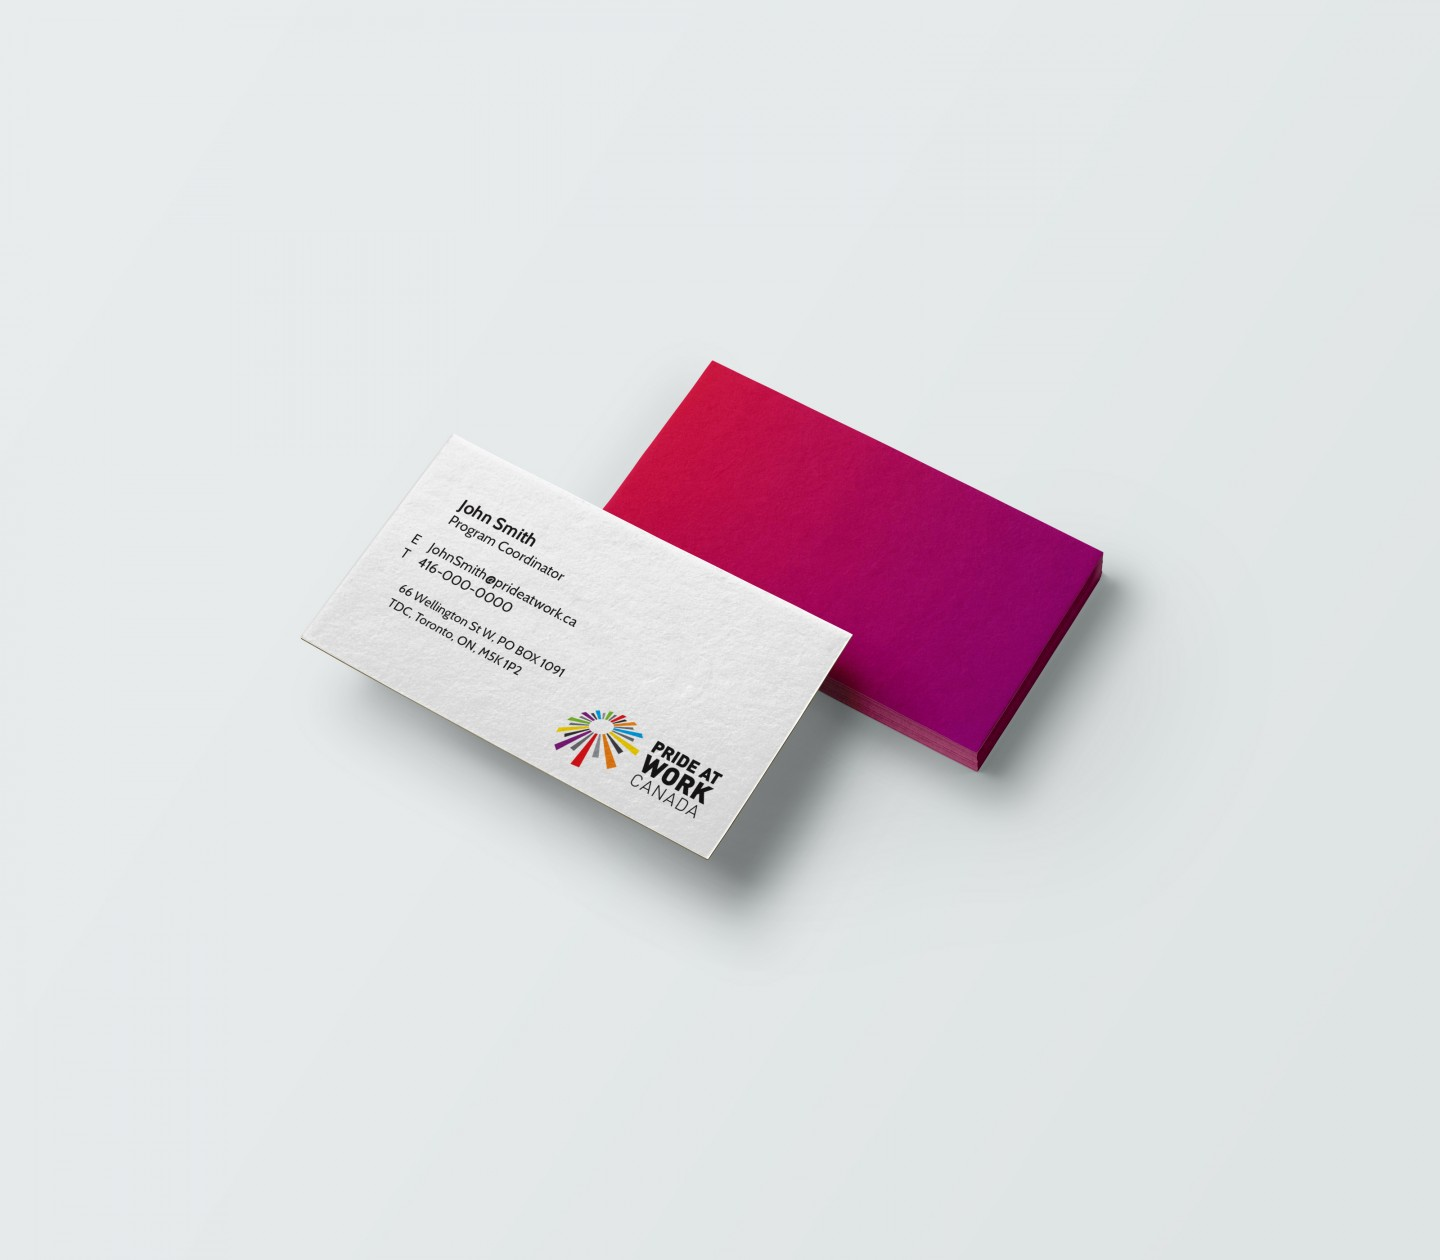 Pride at work Business Card Mockup